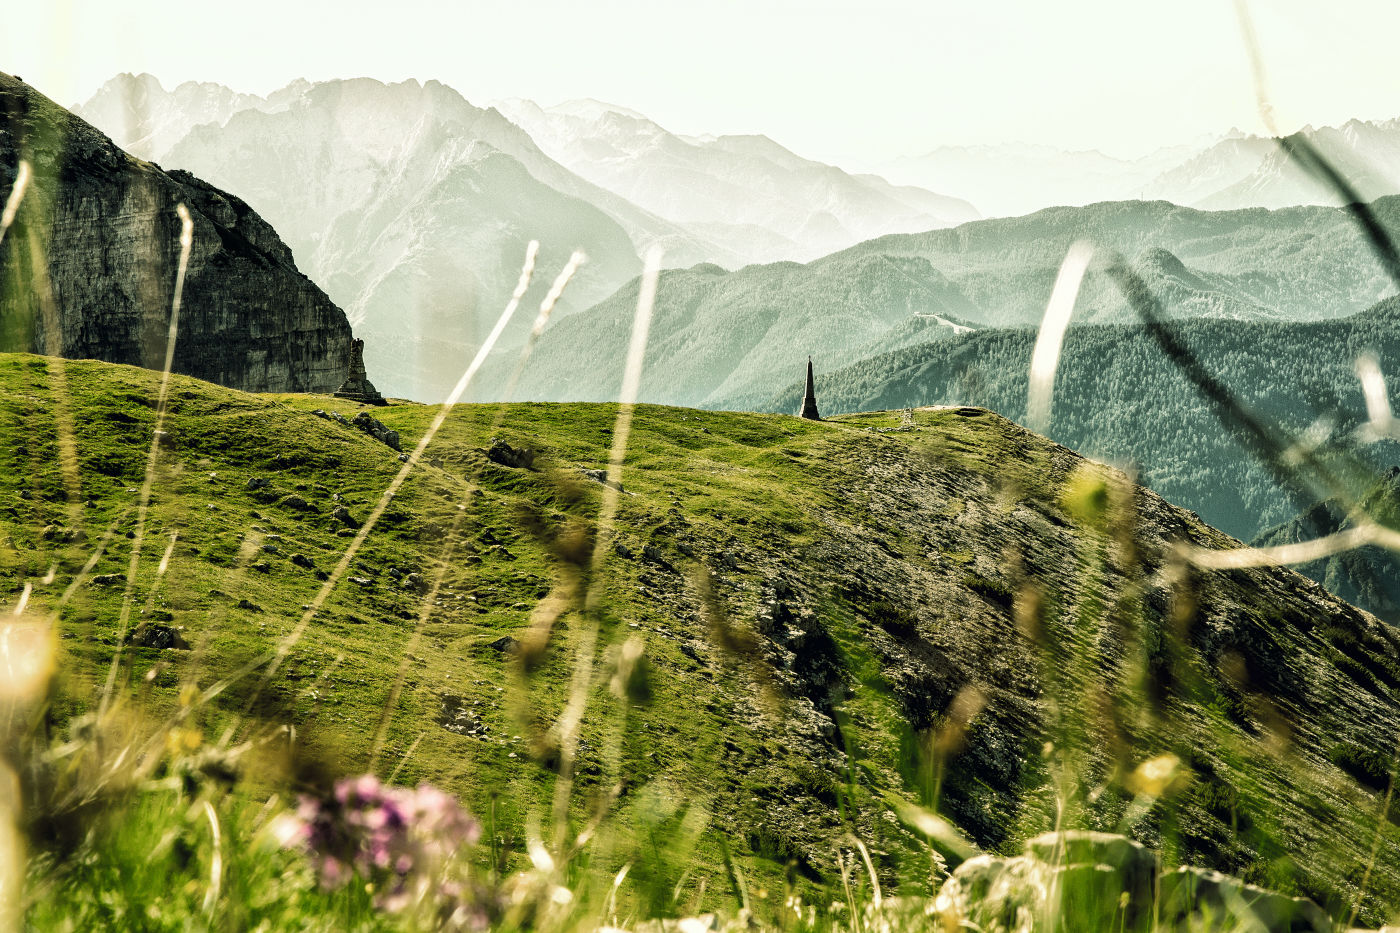 Swarovski Optik APPRECIATING THE GIFTS OF NATURE mountain landscape in the green Alps